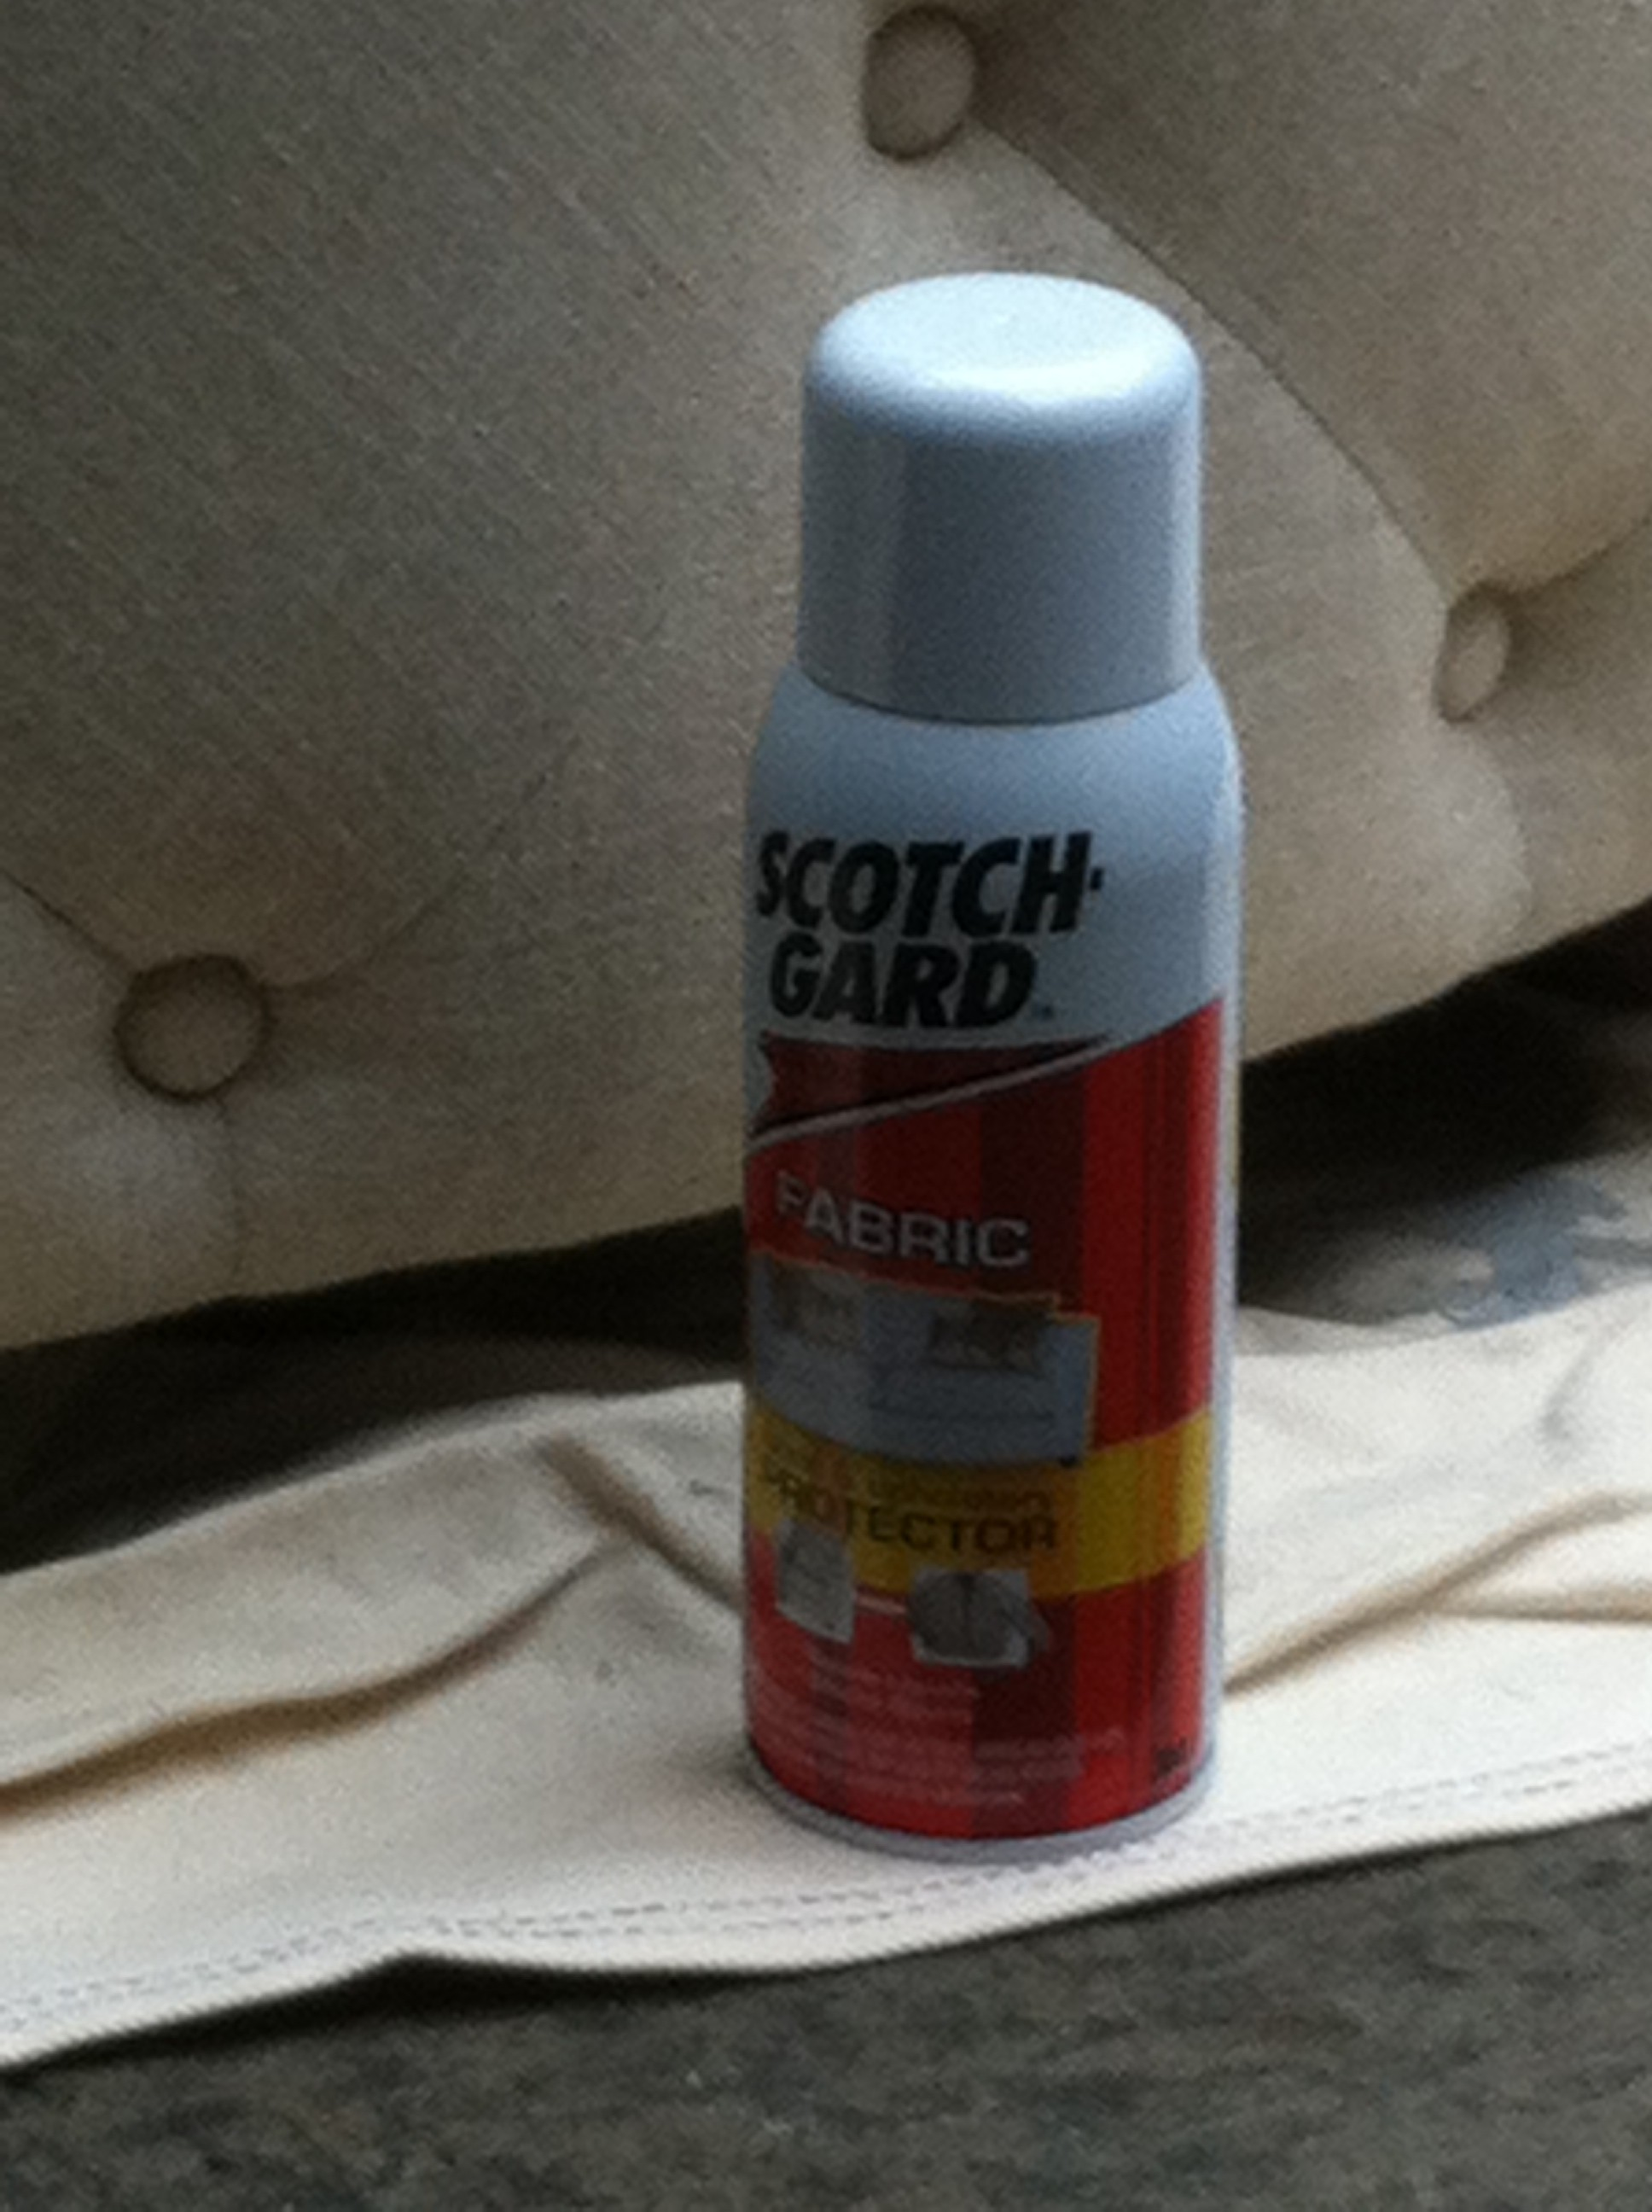 A close up shot of Scotchgard Fabric protectant